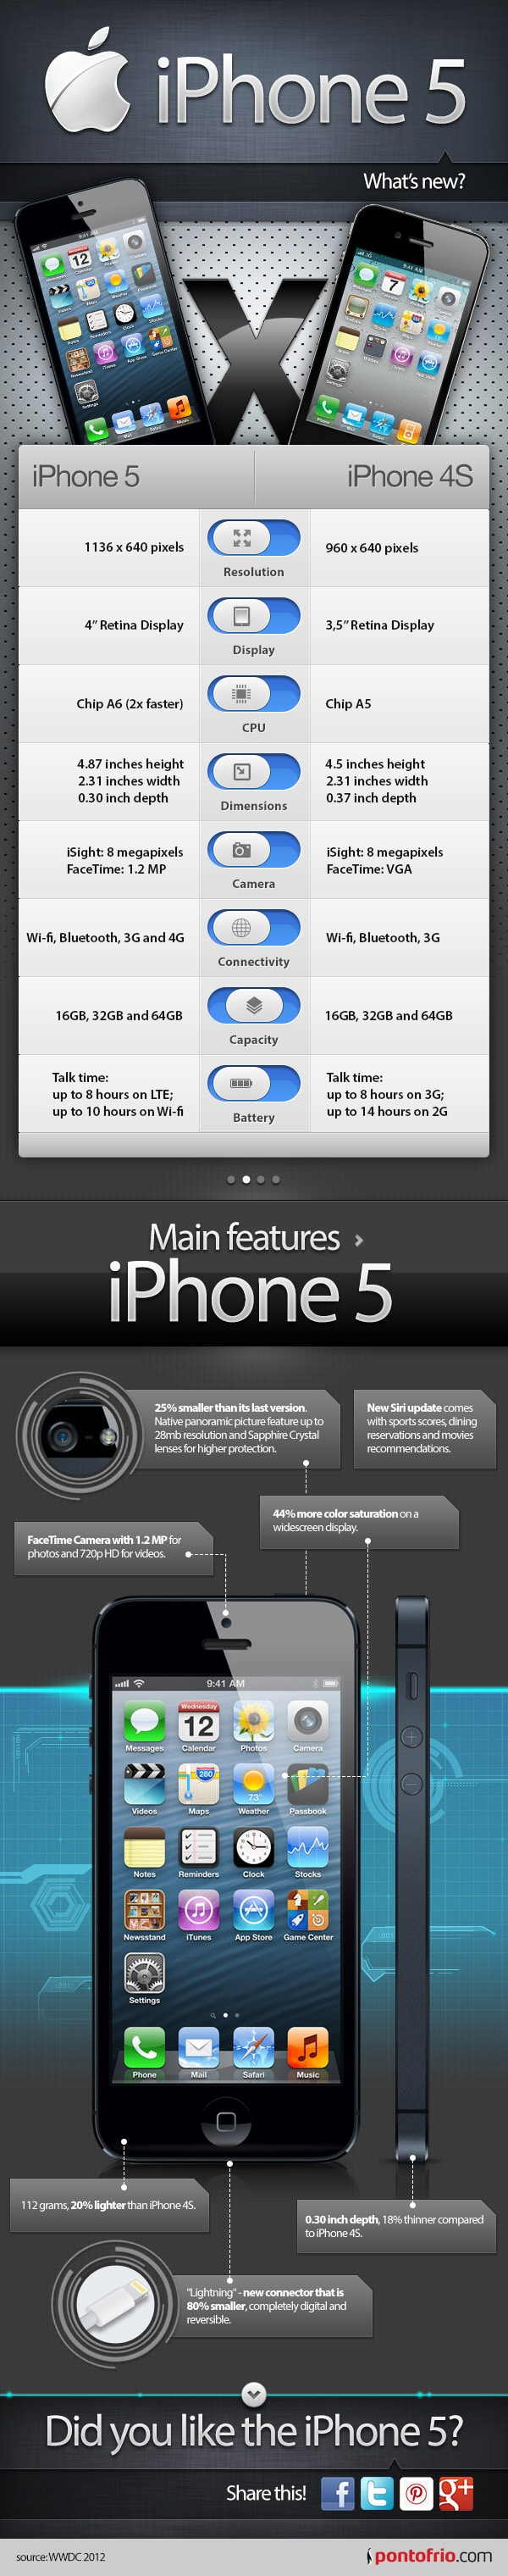 iPhone 5 Review: What's Really New? [Infographic]